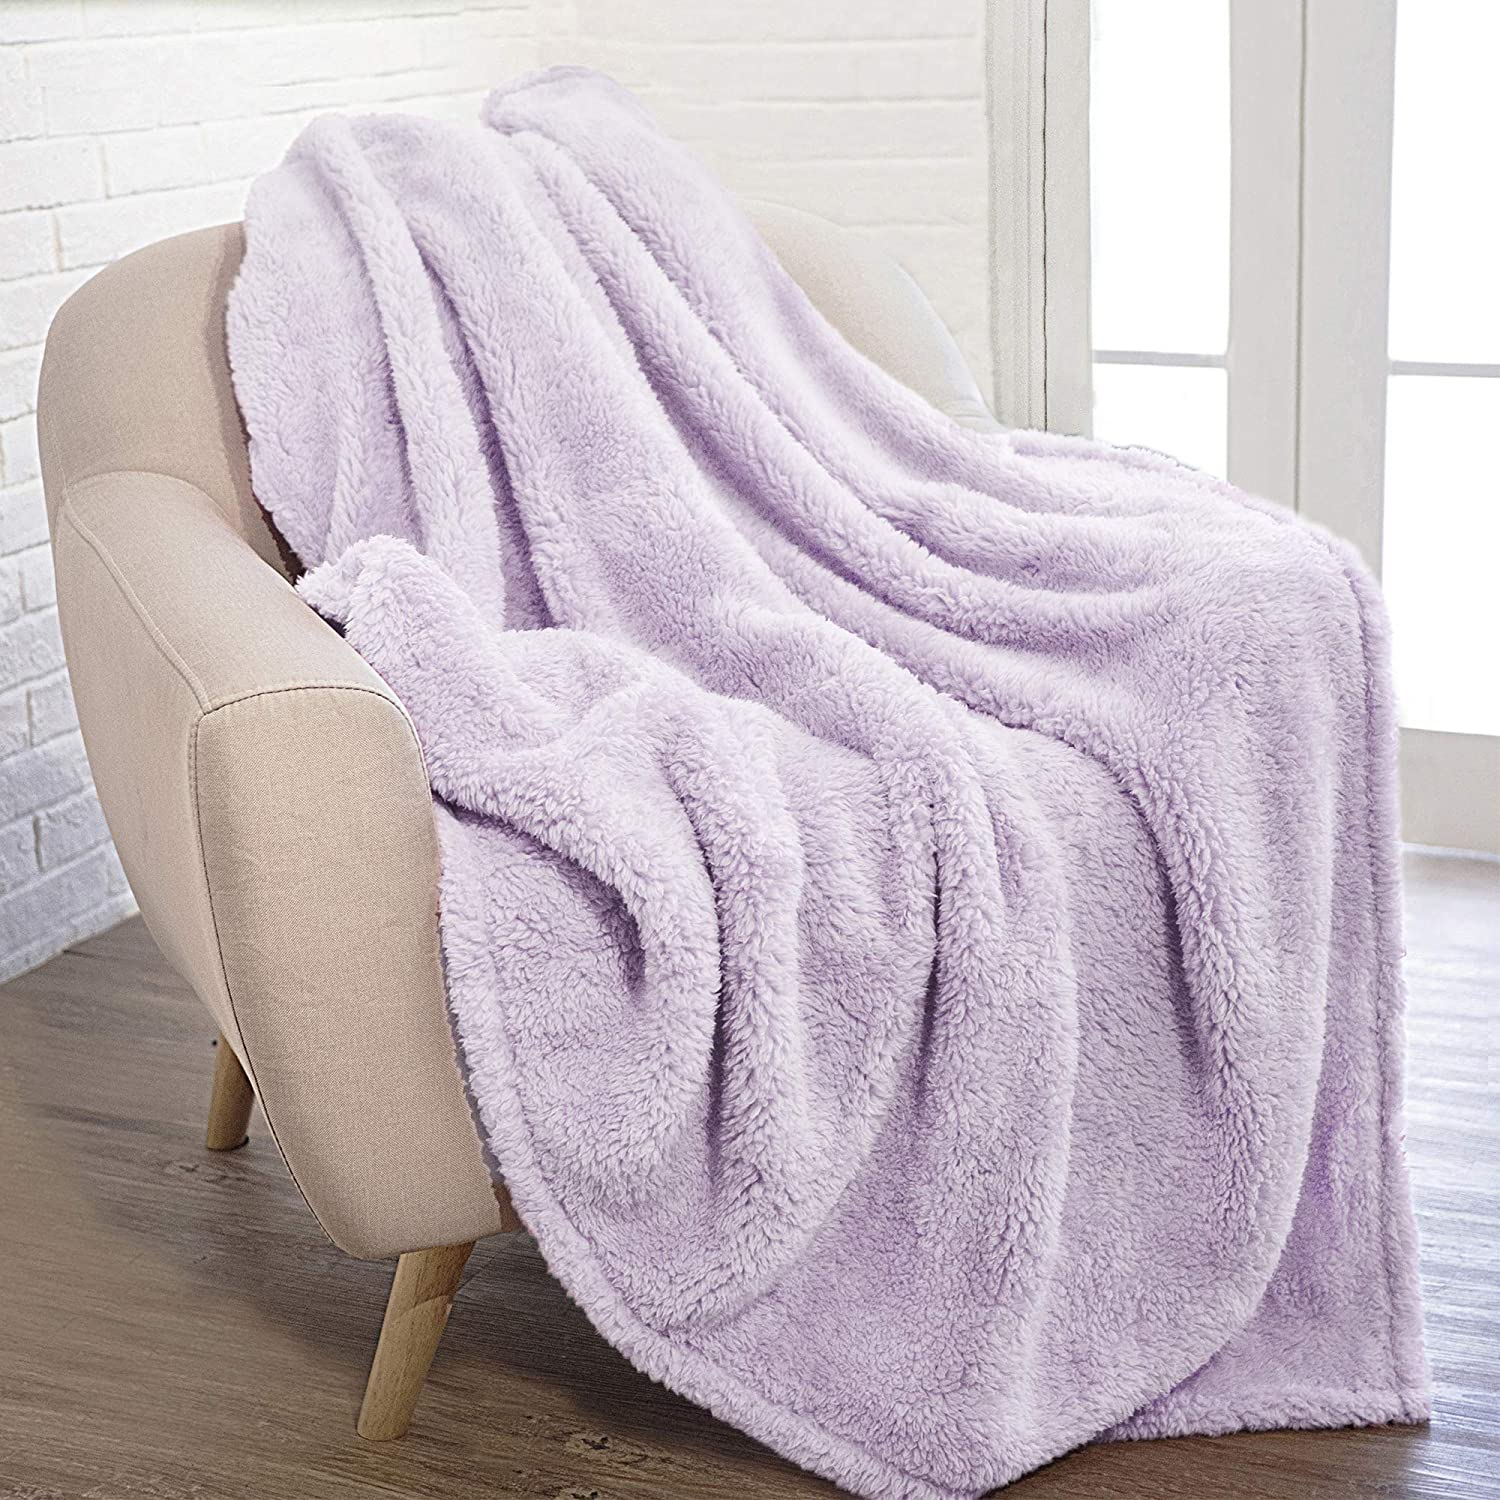 PAVILIA Fluffy Sherpa Throw Blanket Spring new work one after another Sofa Recommendation Plush Shagg Couch for